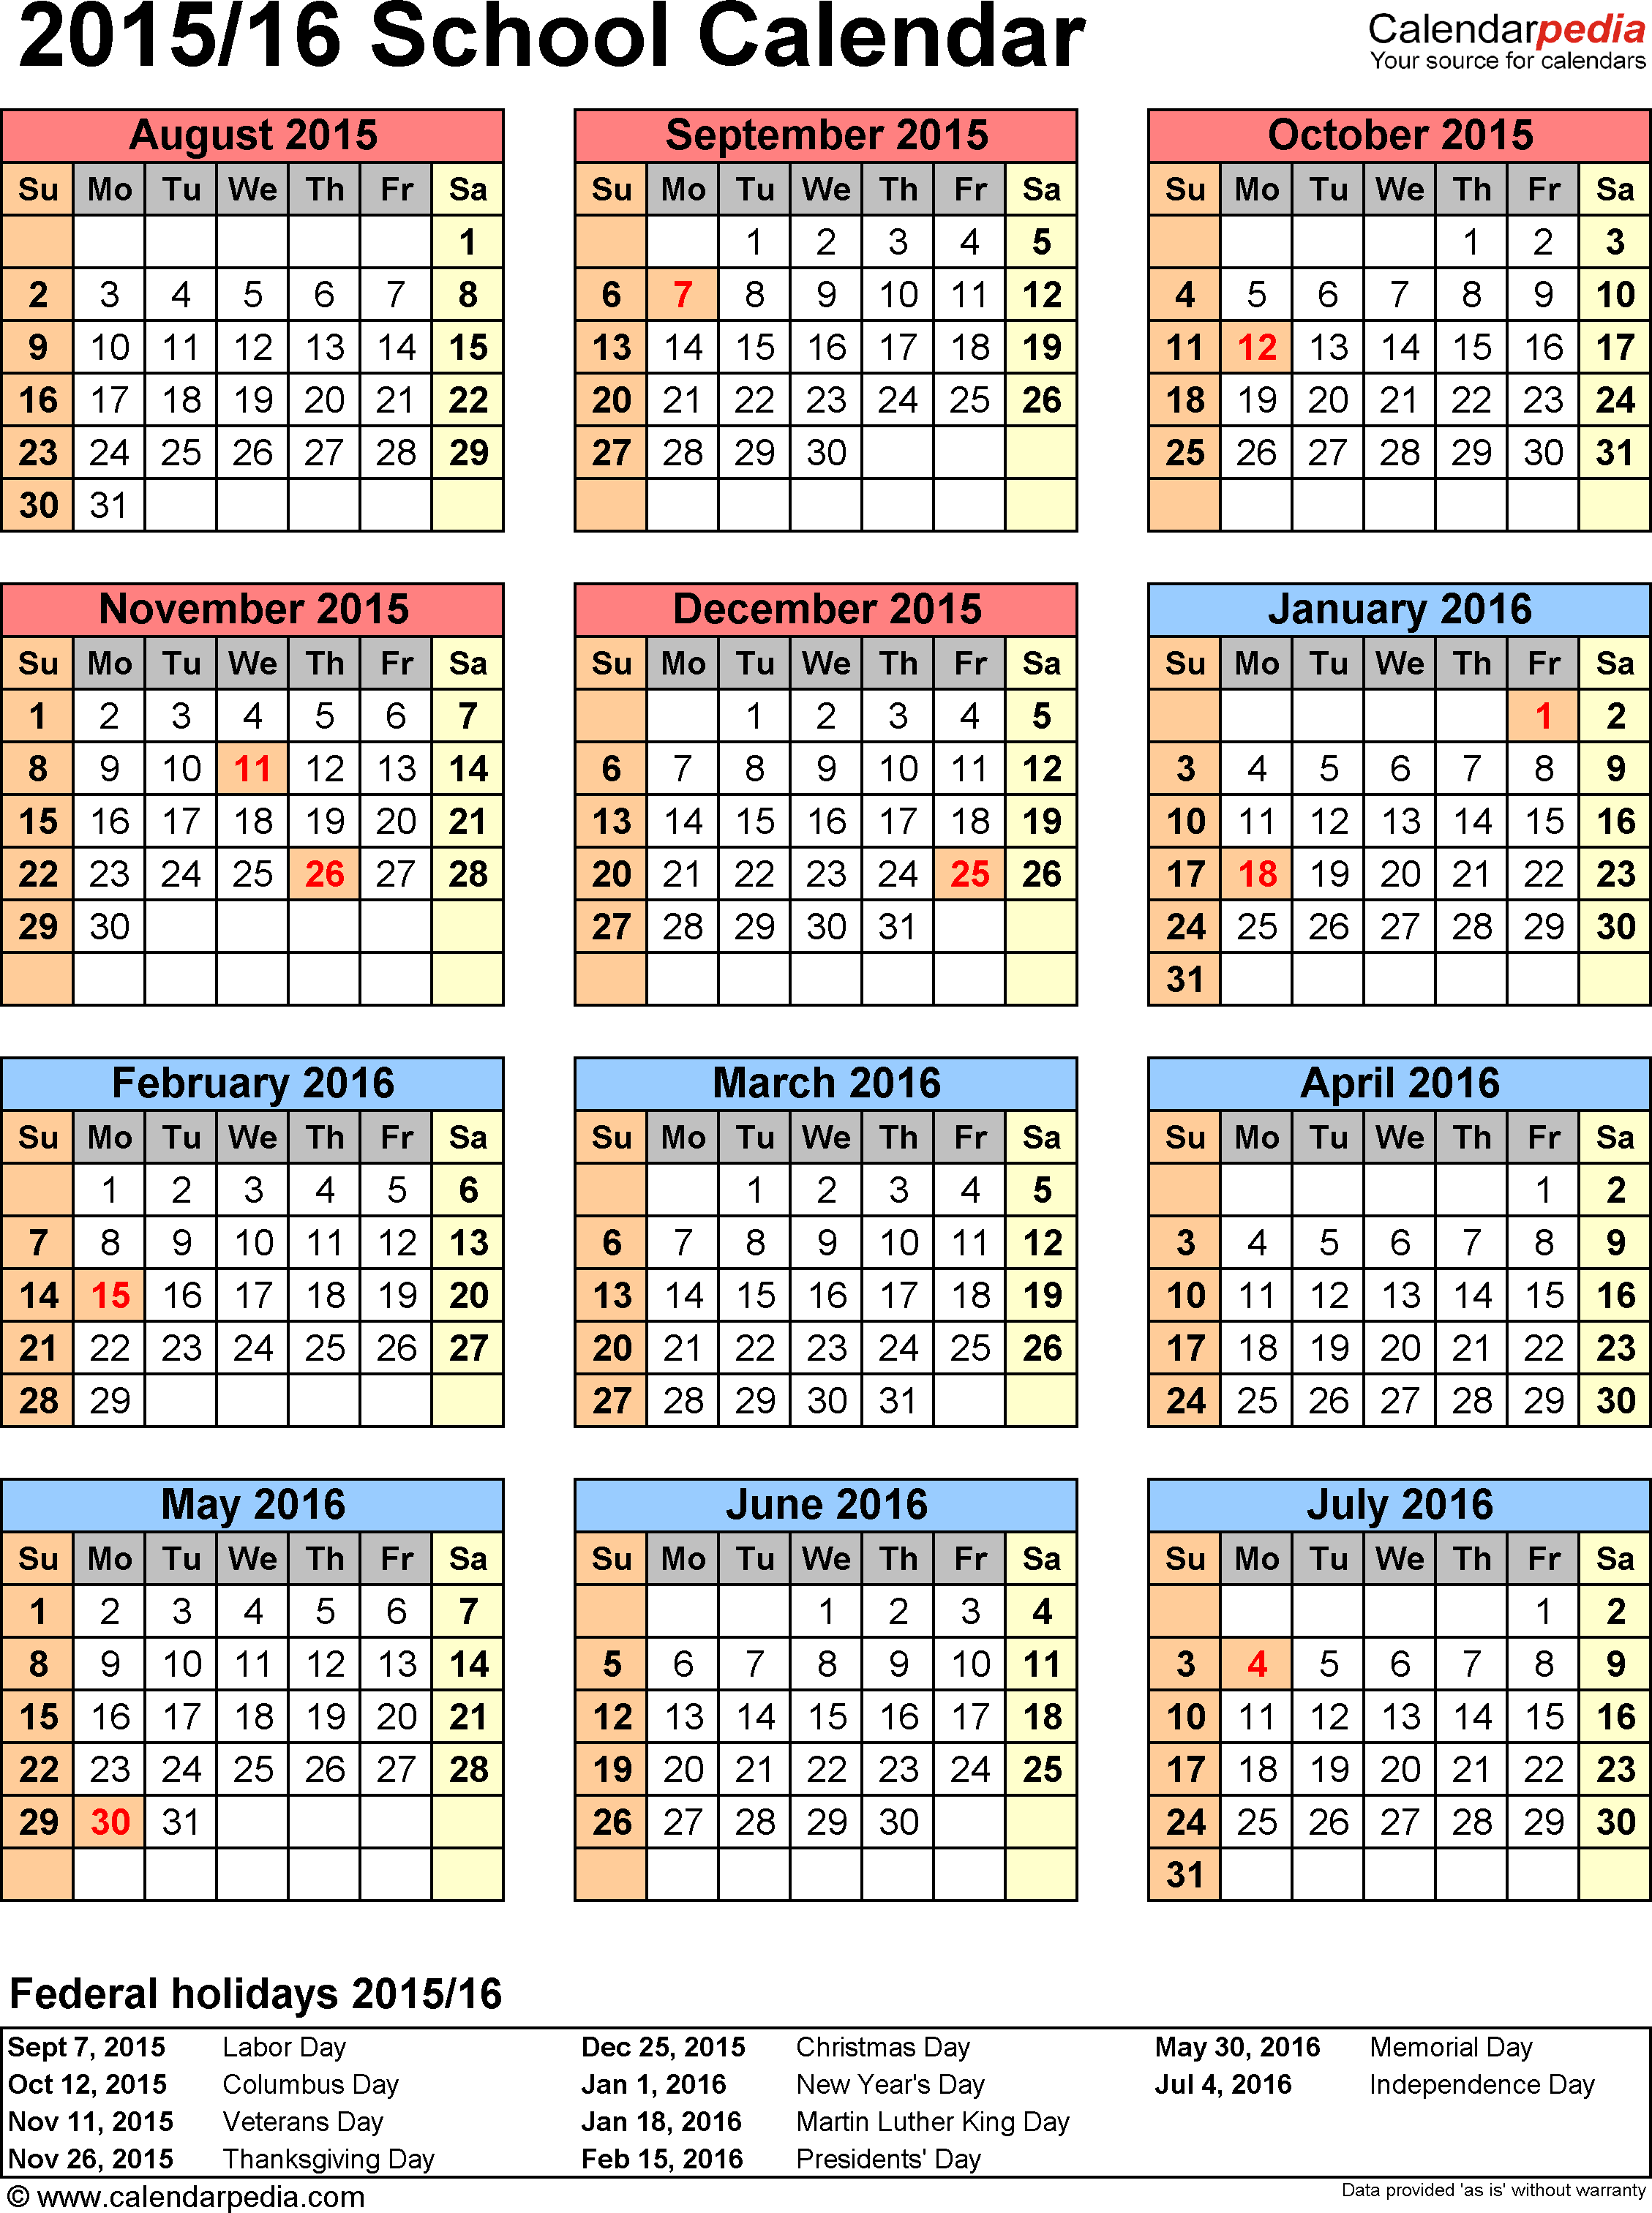 Template 7: School calendar 2015/16 for PDF, portrait orientation, year at a glance, 1 page